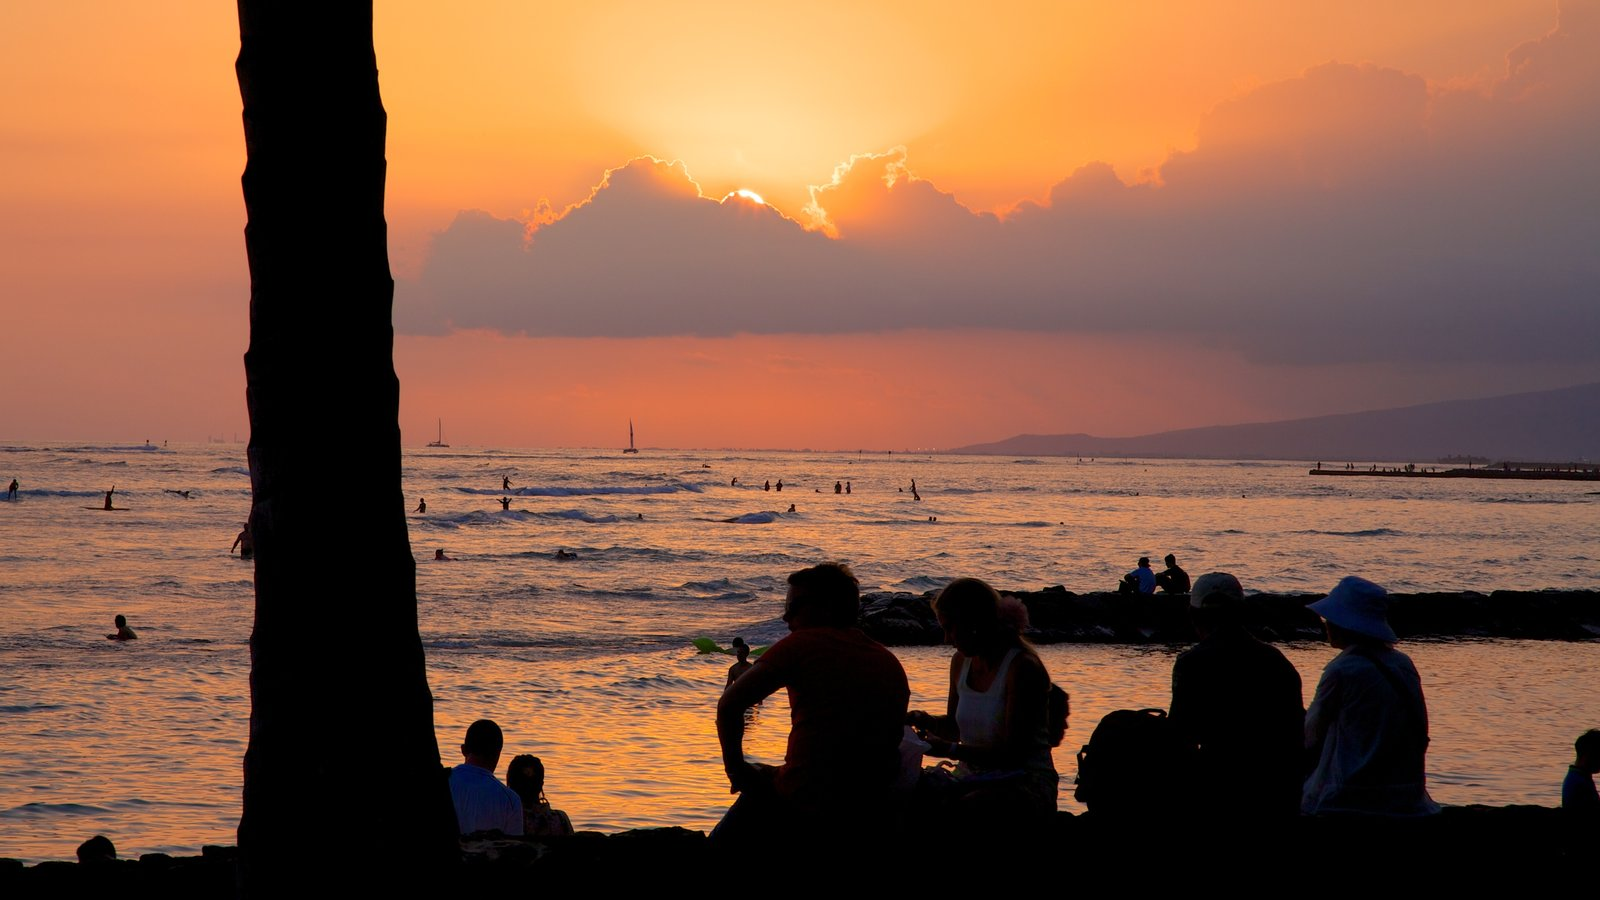 Honolulu which includes general coastal views, a sunset and landscape views